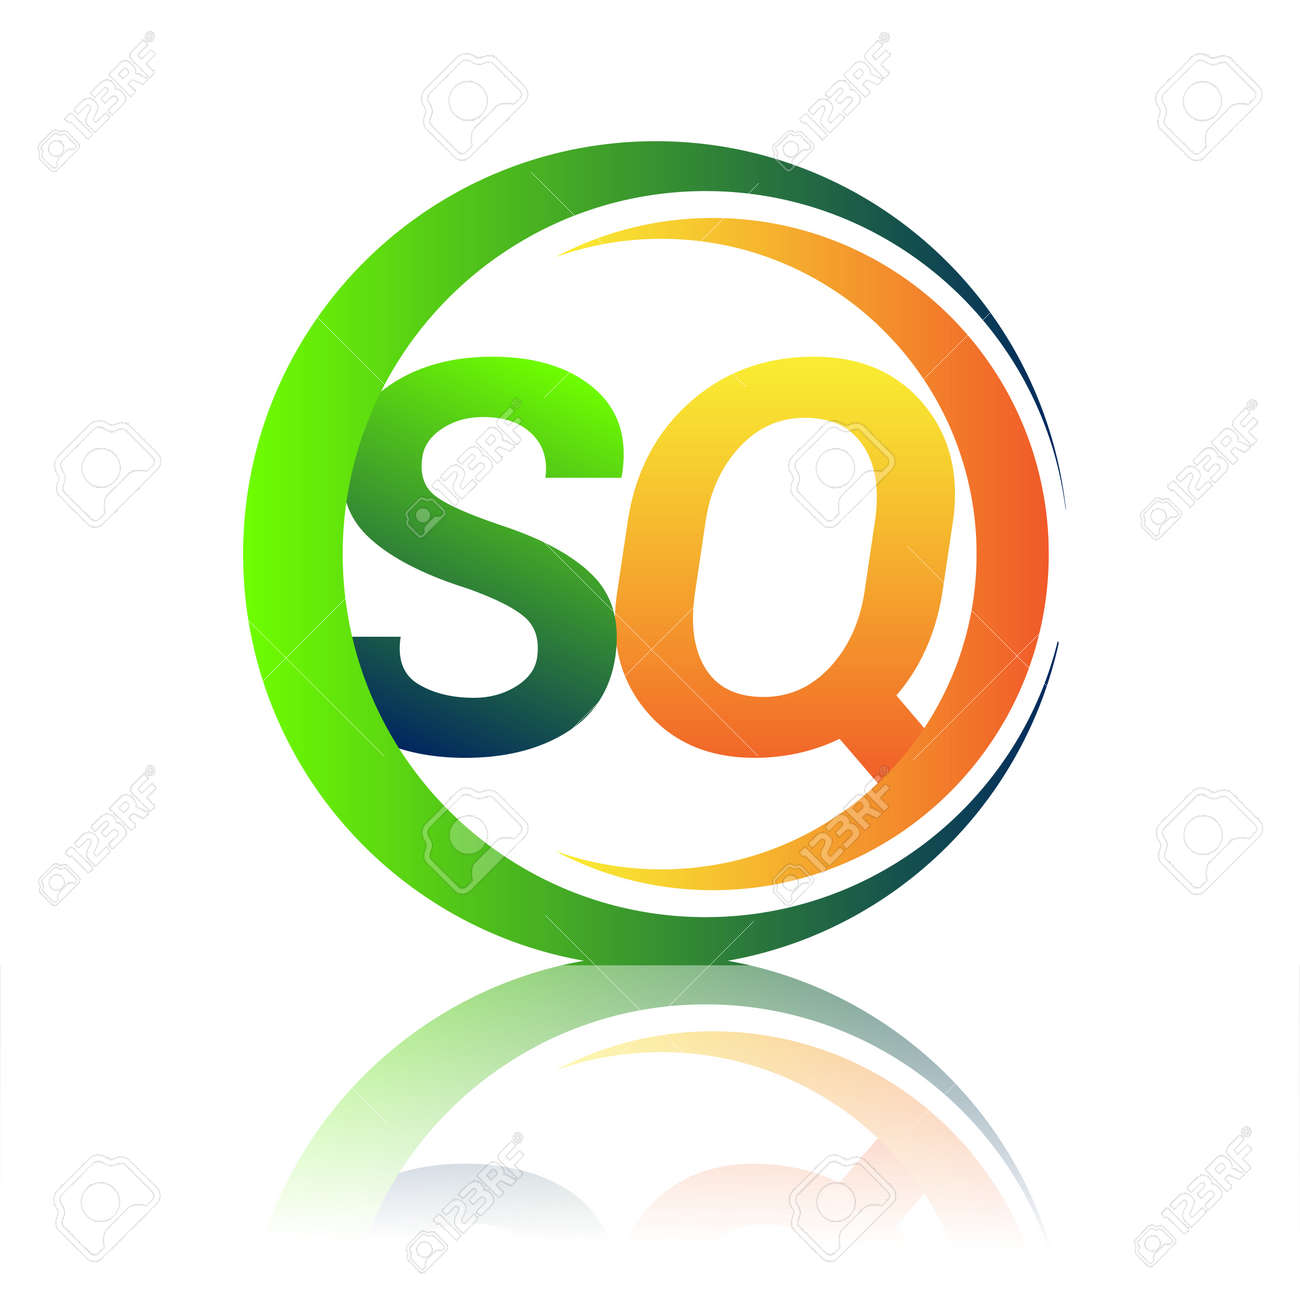 initial letter logo SQ company name green and orange color on circle and swoosh design. vector logotype for business and company identity. - 158238854